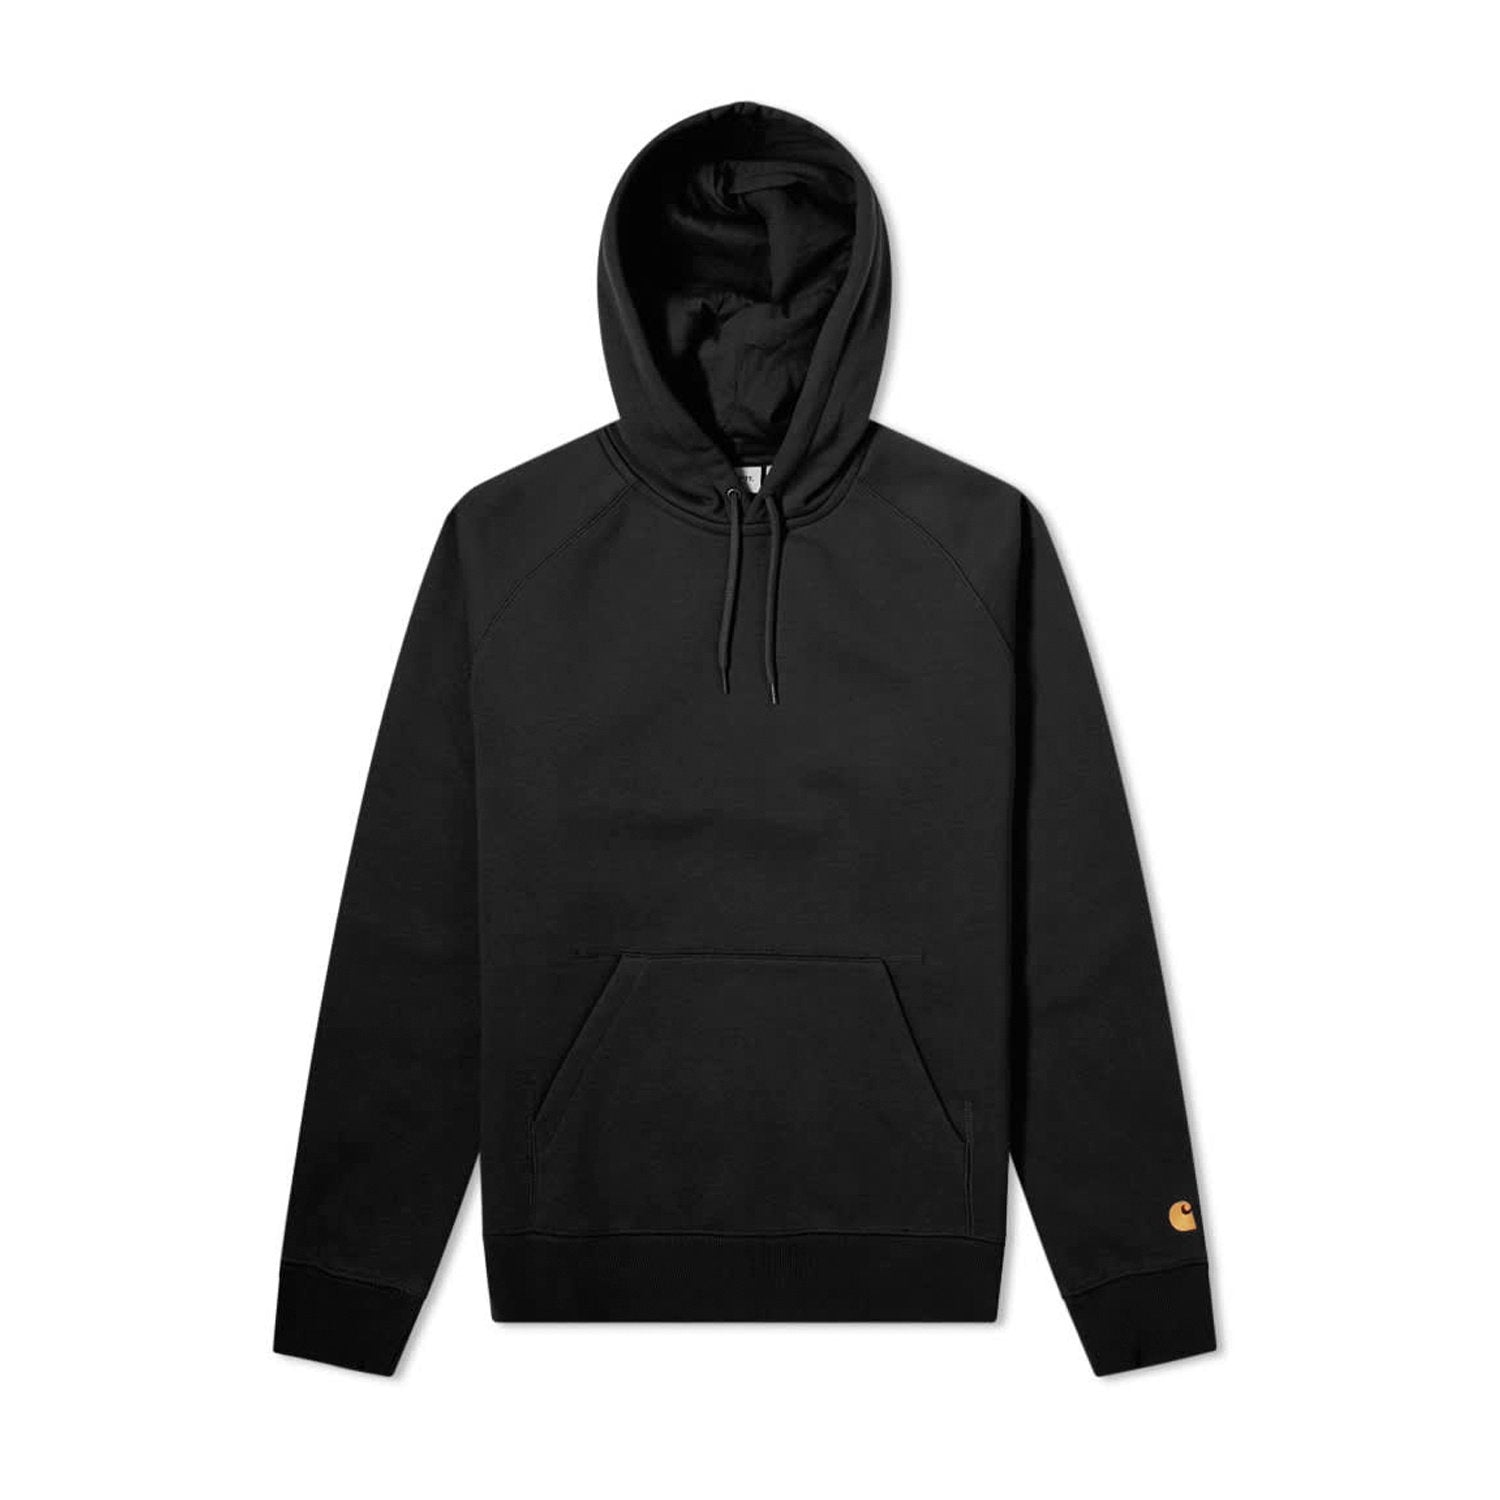 Carhartt WIP Hooded Chase Sweat - Black/Gold